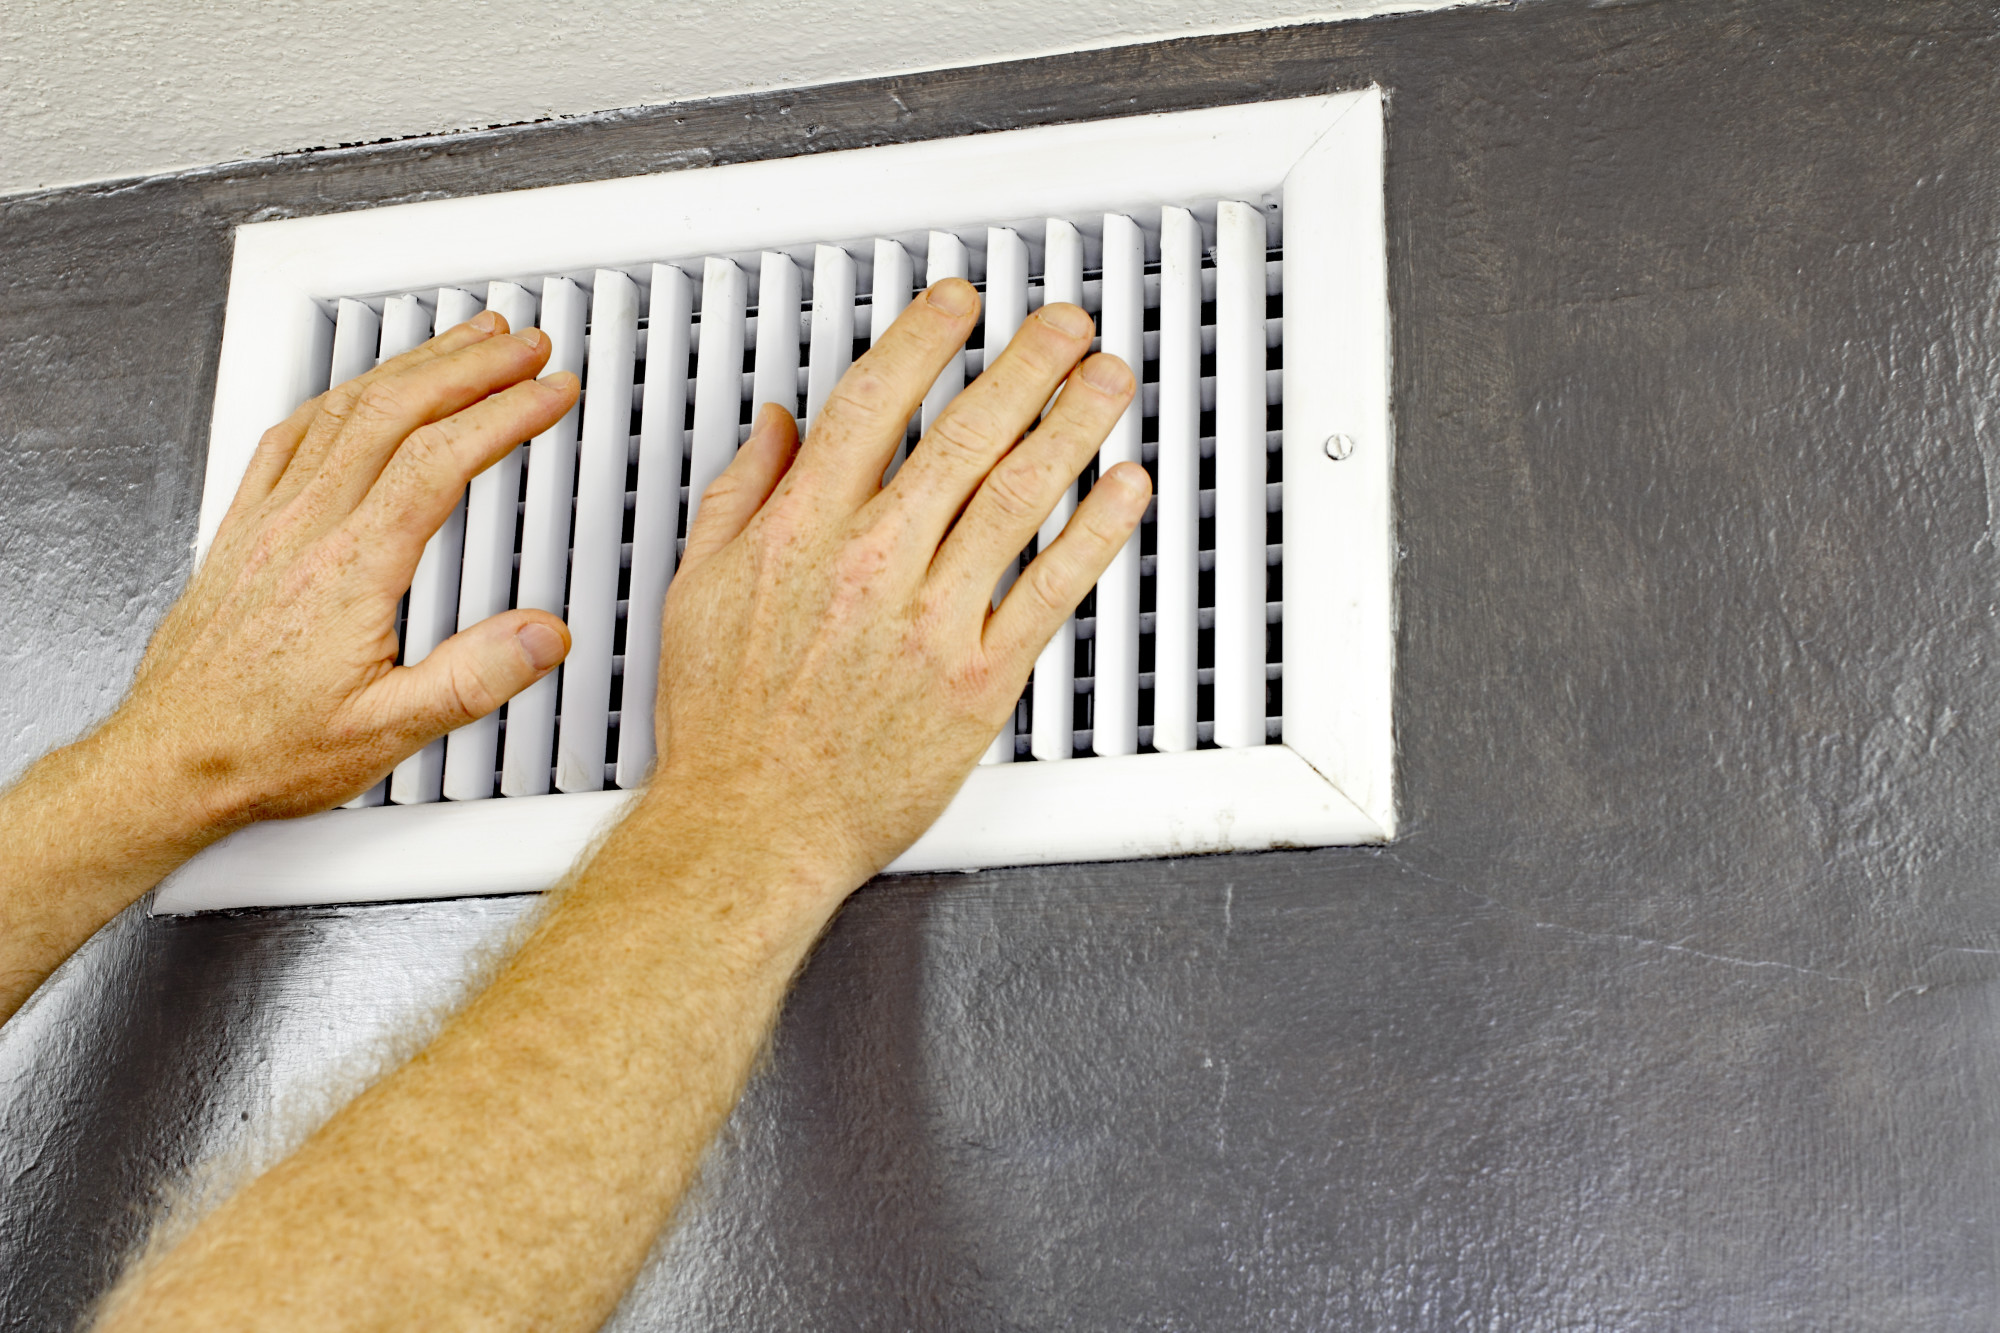 Can't Afford a Professional? 8 Ways to Fix a Broken Air Conditioner